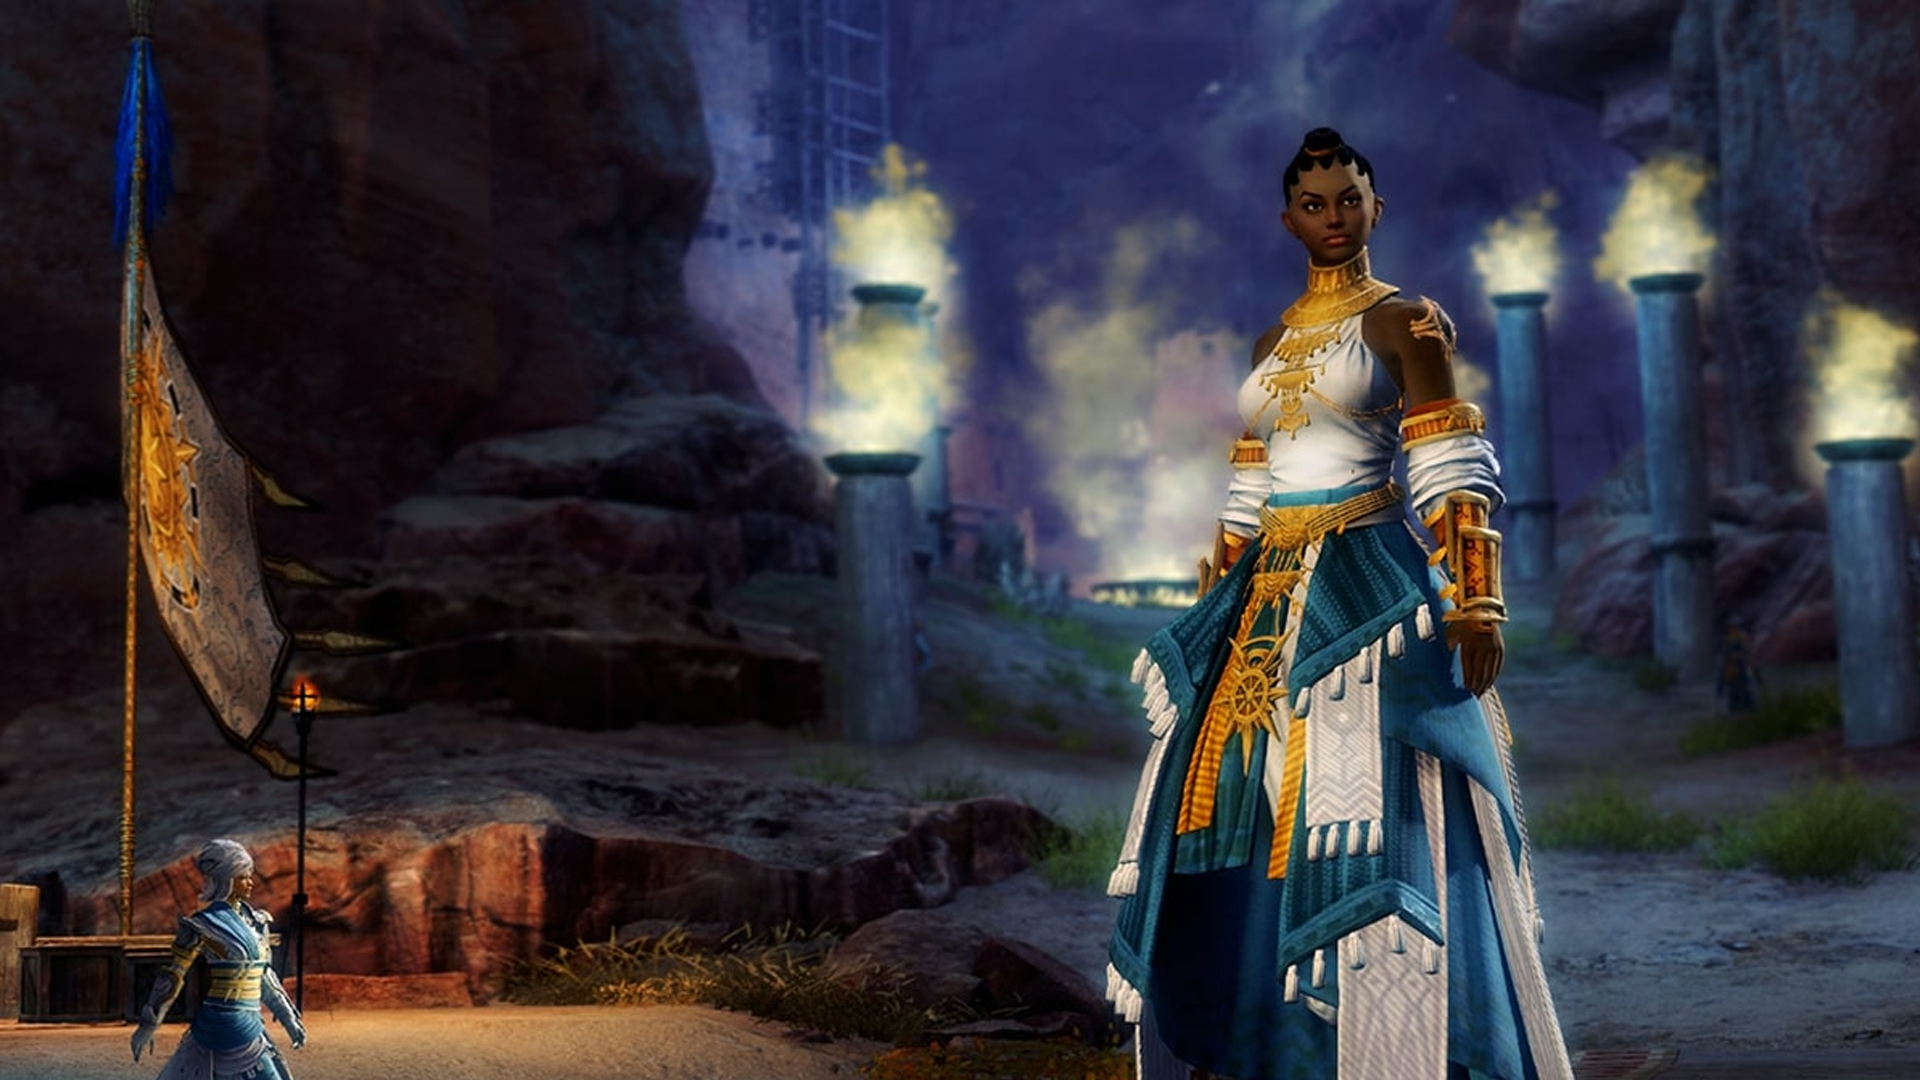 Guild Wars 2's next episode focuses on small stories over